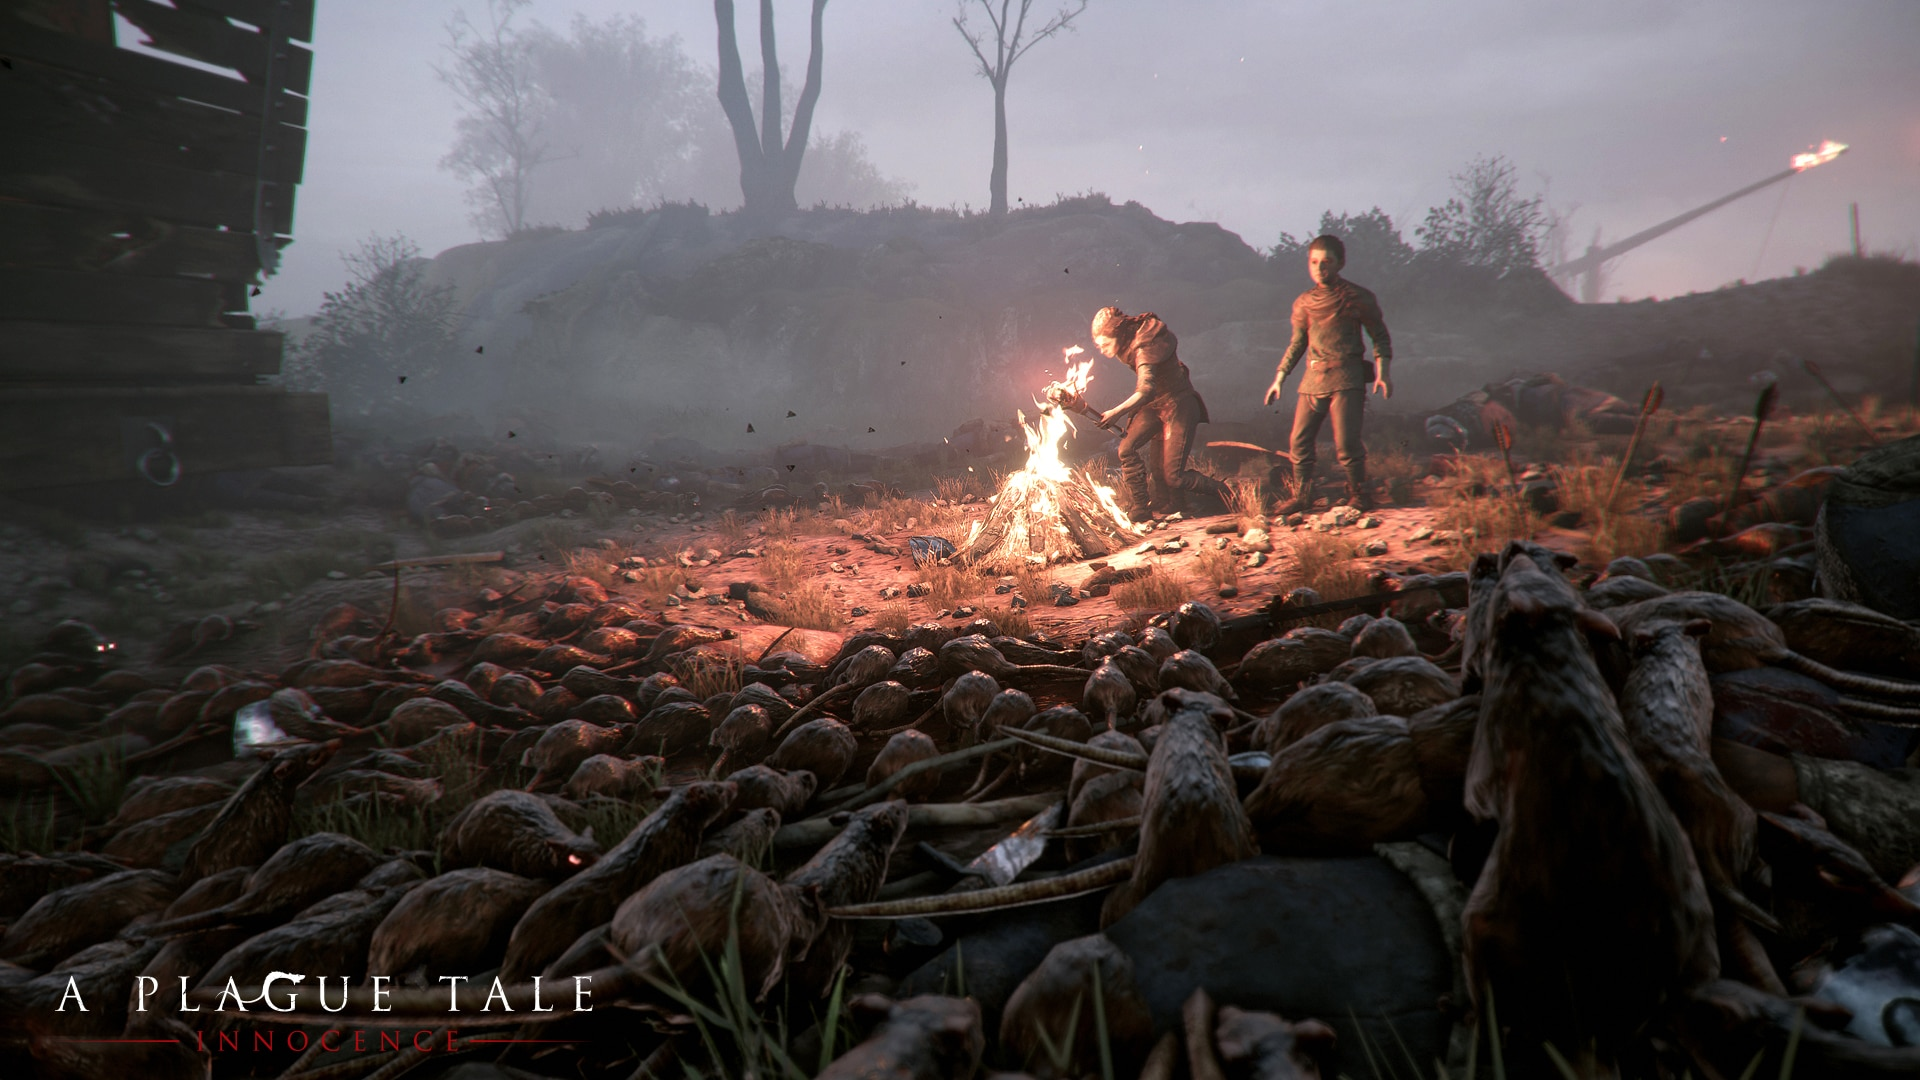 A Plague Tale Innocence 14 - E3 2018: Getting Down With The Sickness In A PLAGUE TALE: INNOCENCE